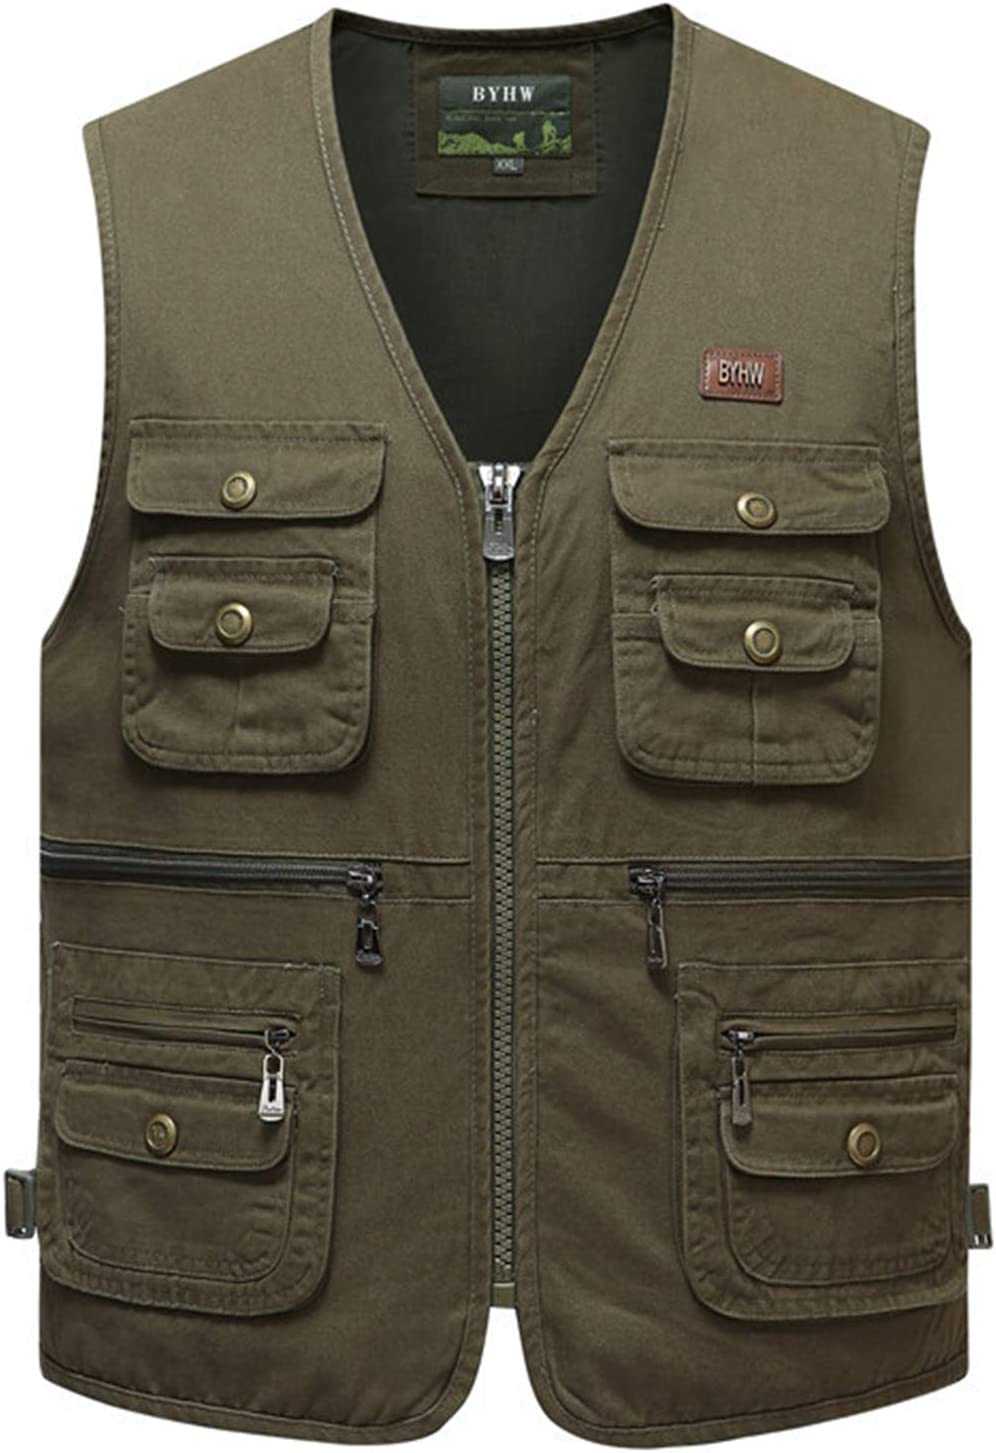 Outdoor Leisure Fishing Vest,Sport Photography Vests, Middle-Aged and Elderly Men's Cotton Clothing,2,5XL